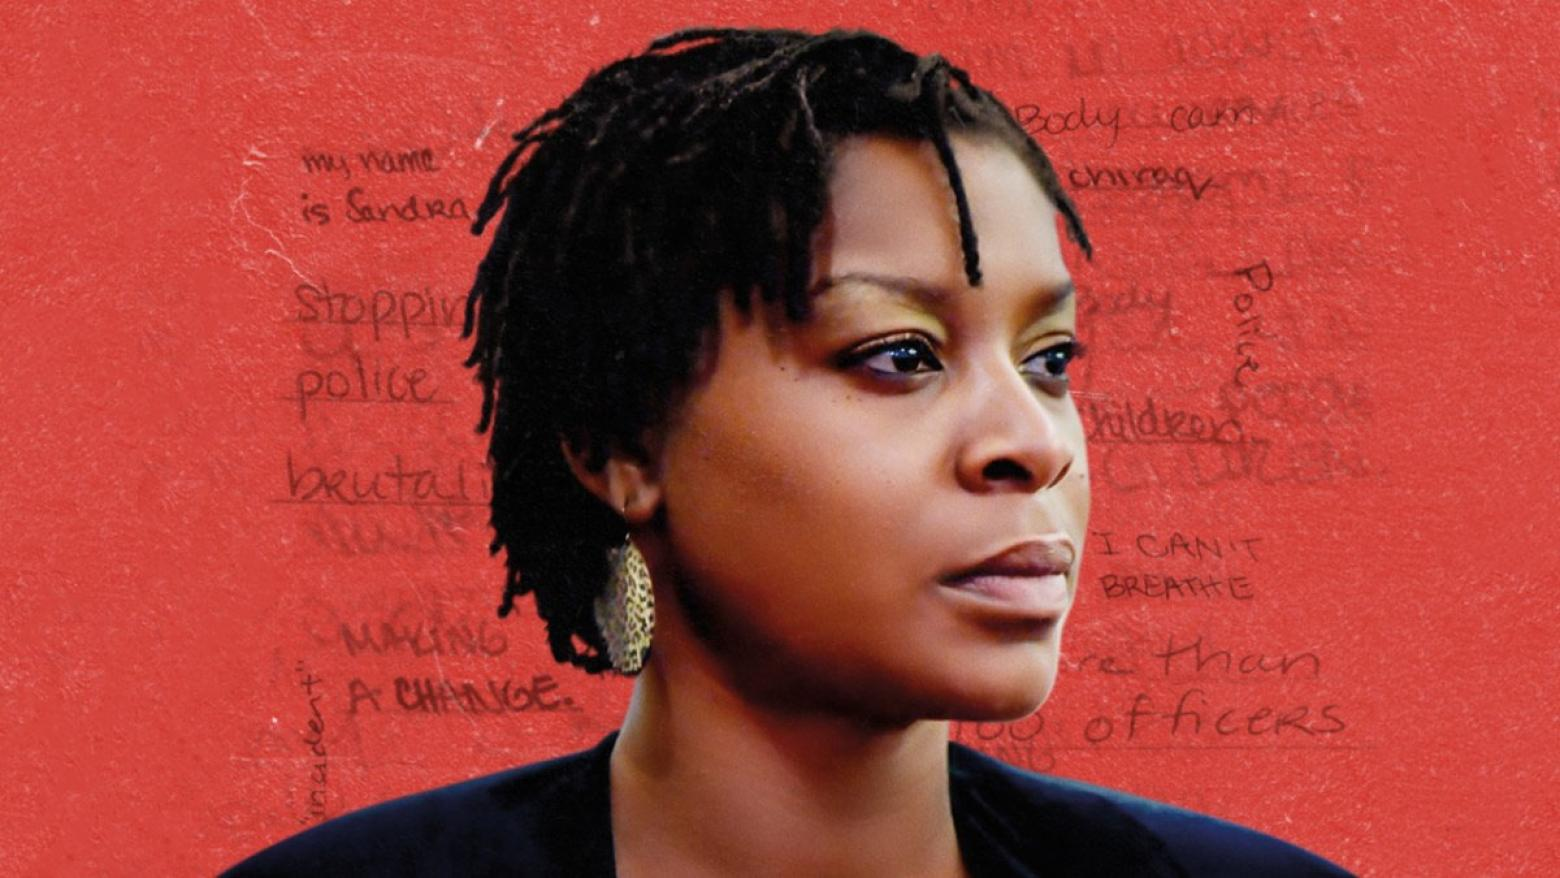 Image from trailer for Say Her Name: The Life and Death of Sandra Bland. Home Box Office, Inc.